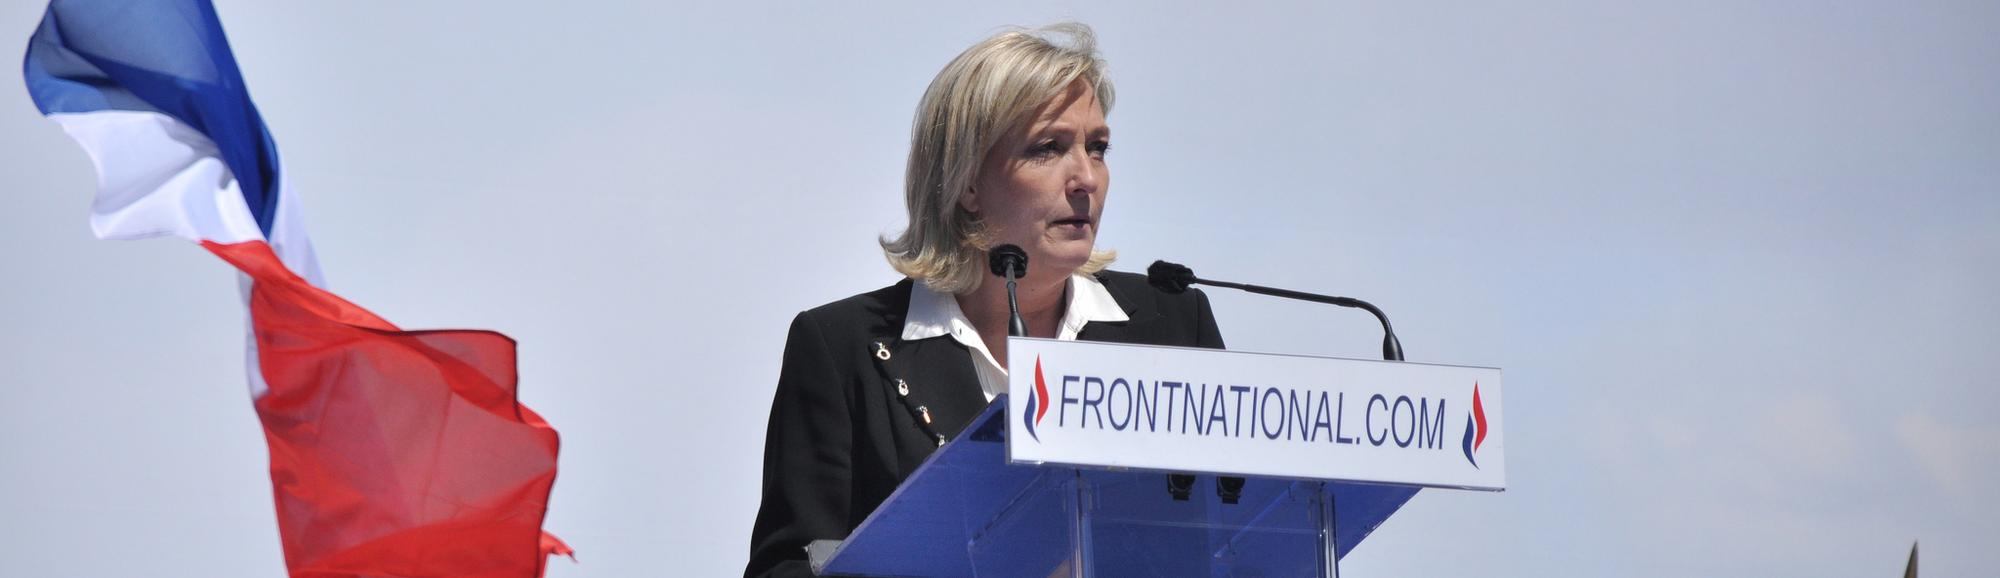 France's Far-Right Struggles to Maintain a United Front After Paris Attacks